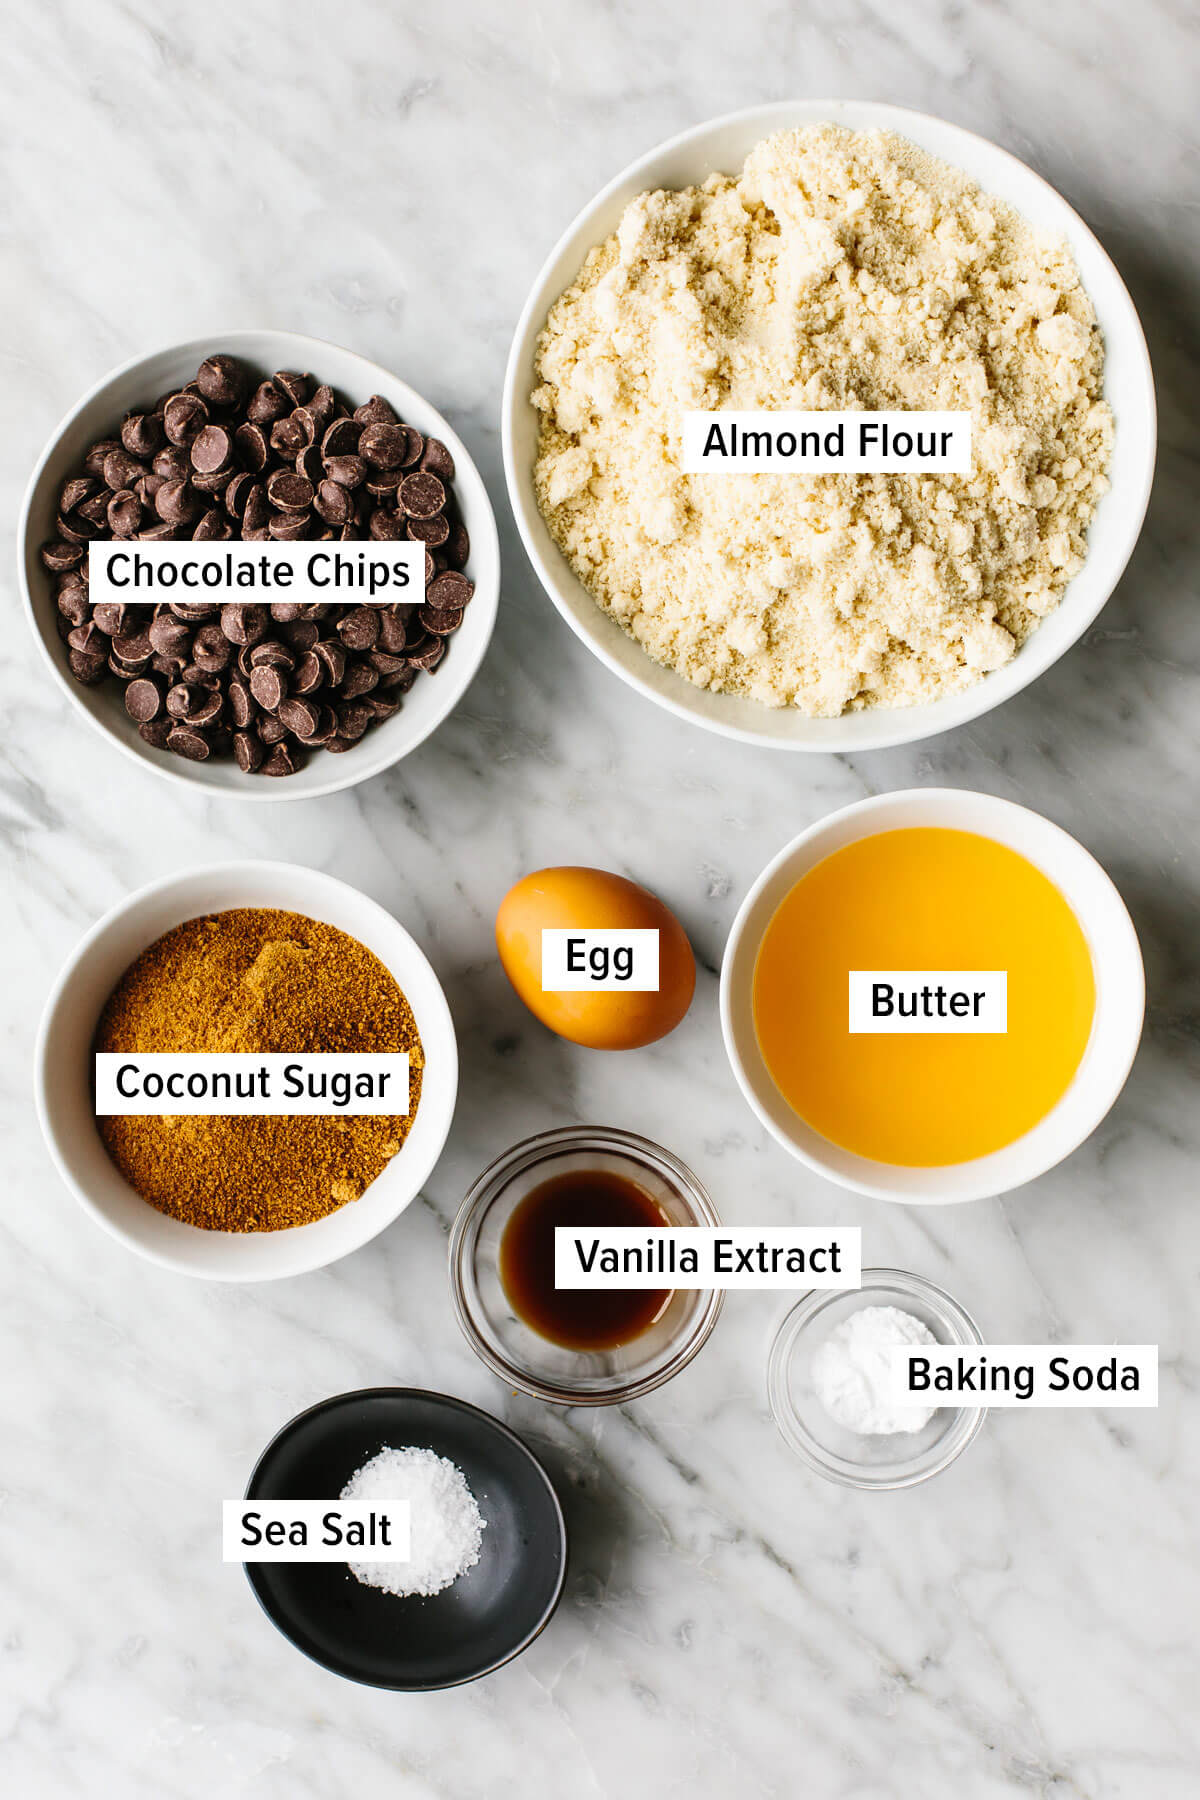 Ingredients for gluten-free chocolate chip cookies on a table.